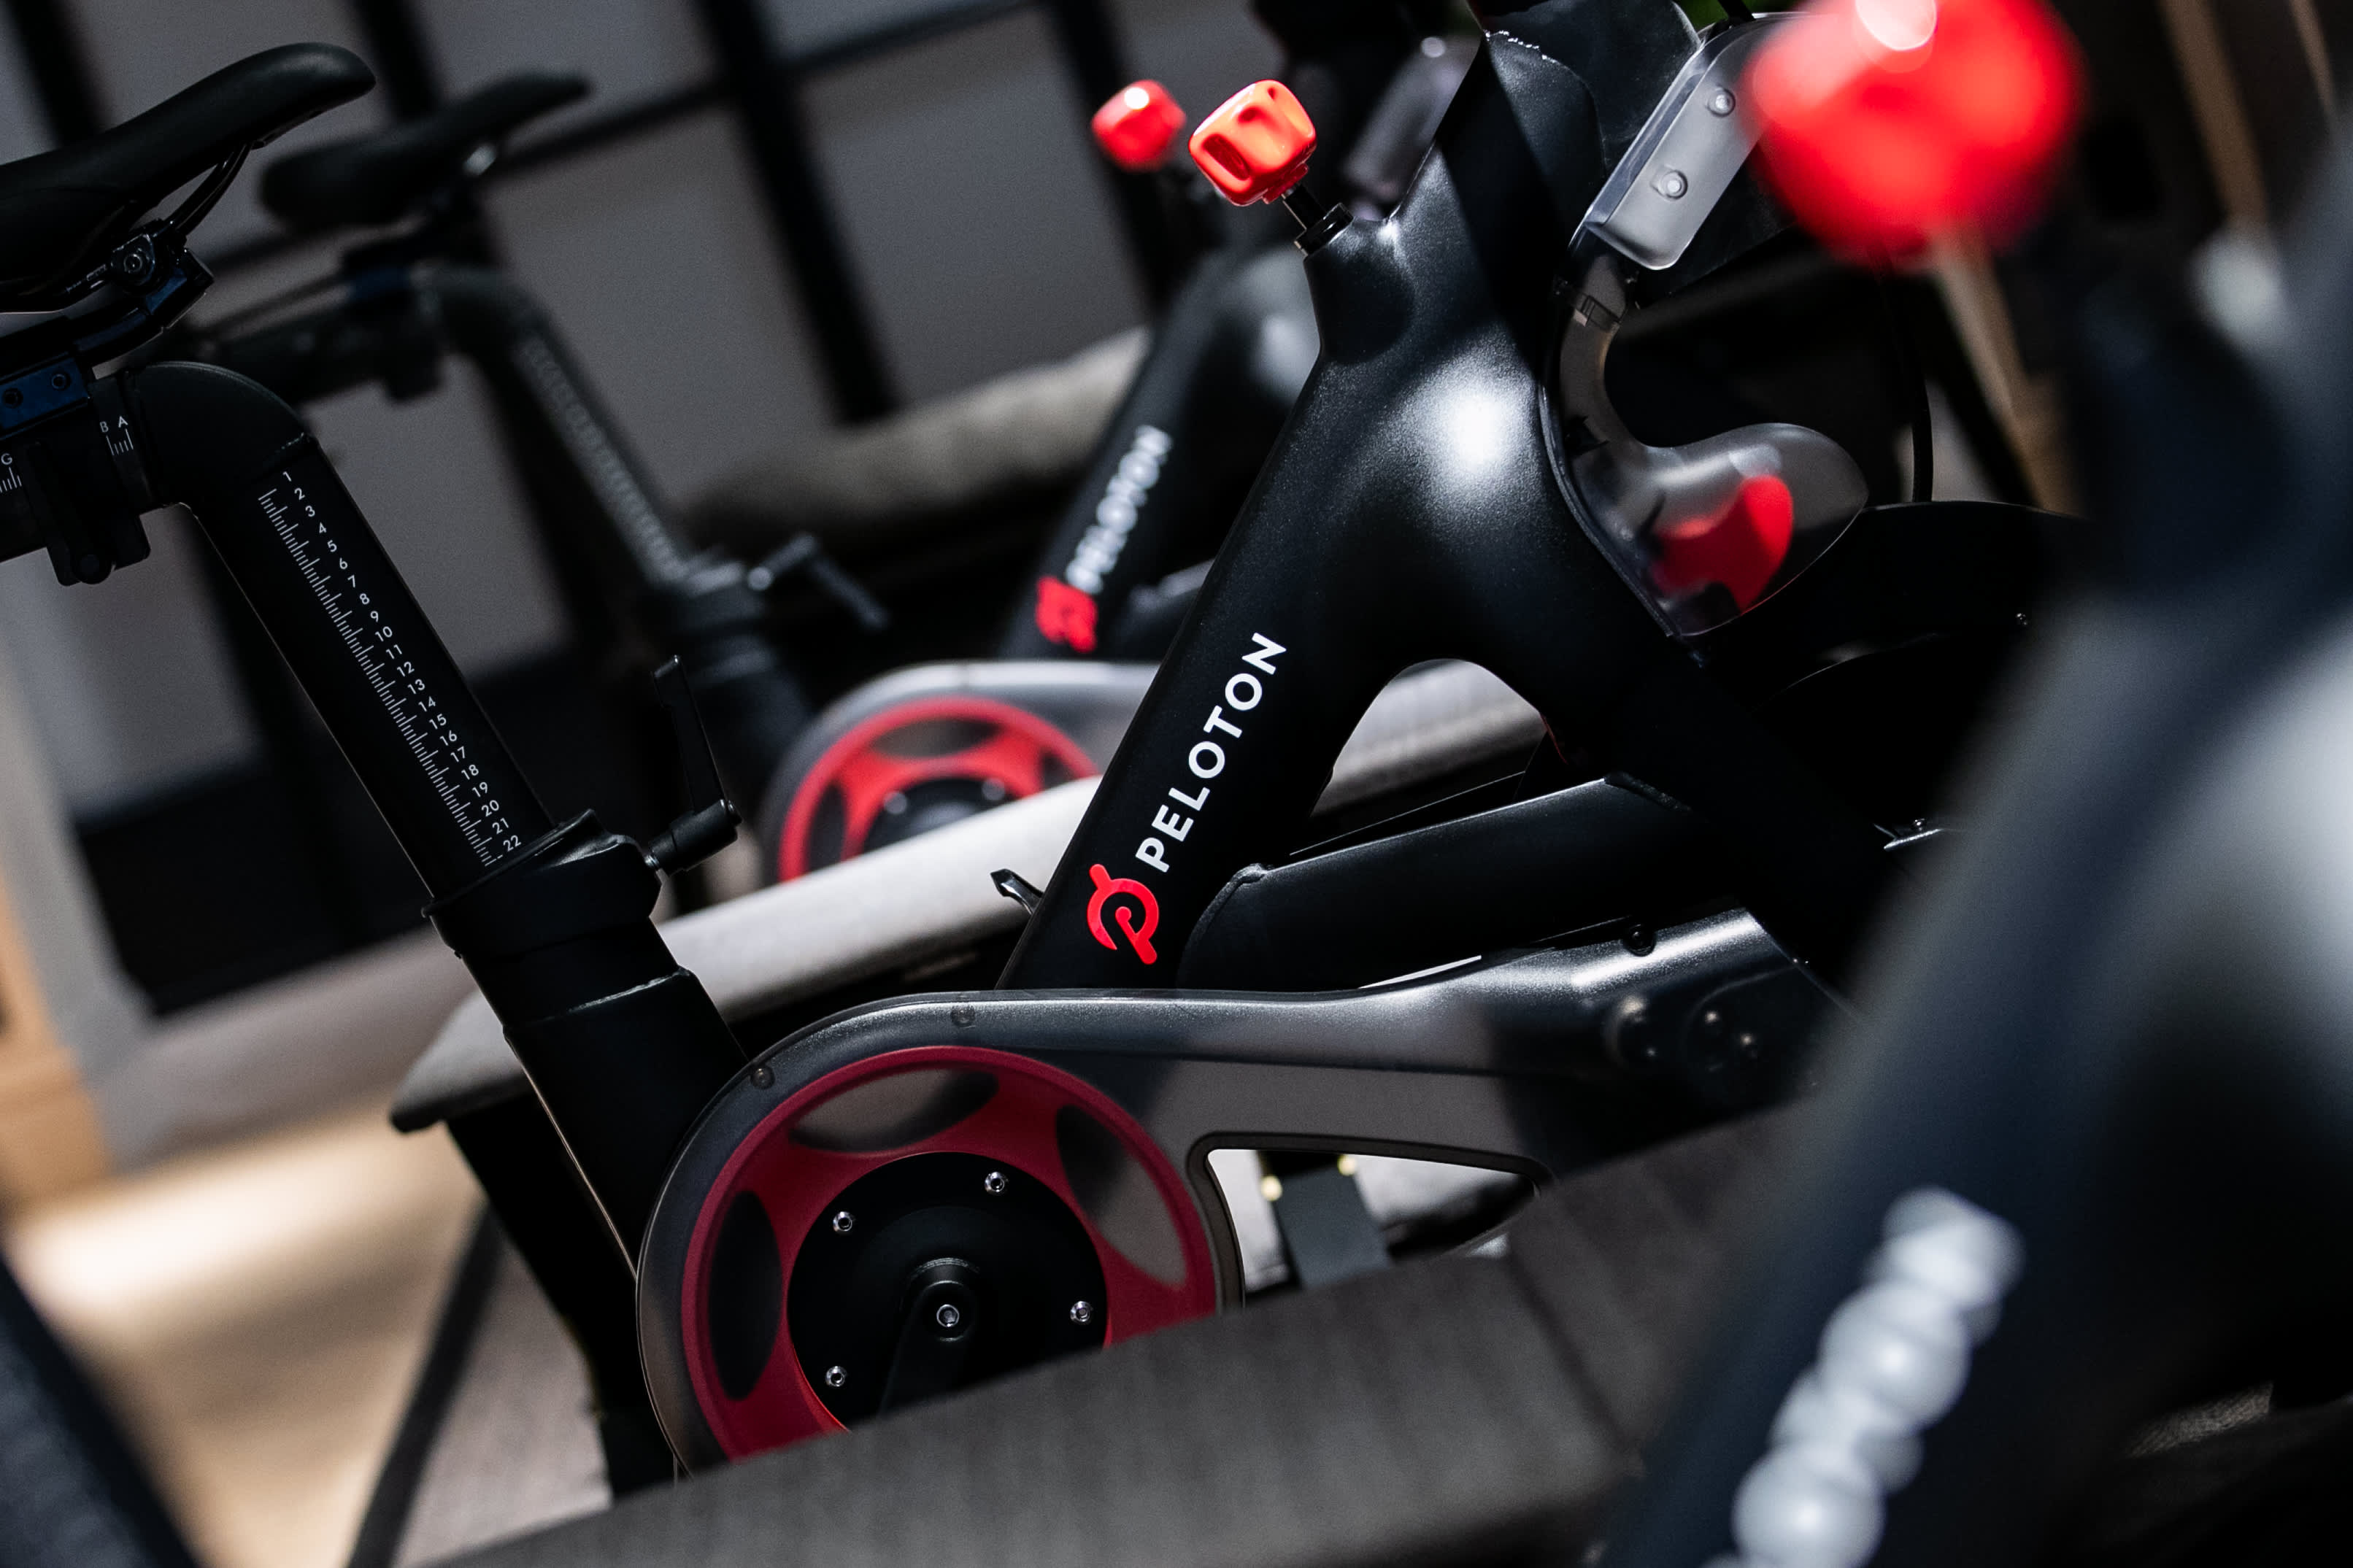 Peloton shares fall after cycle maker posts disappointing earnings and outlook; cuts Bike price